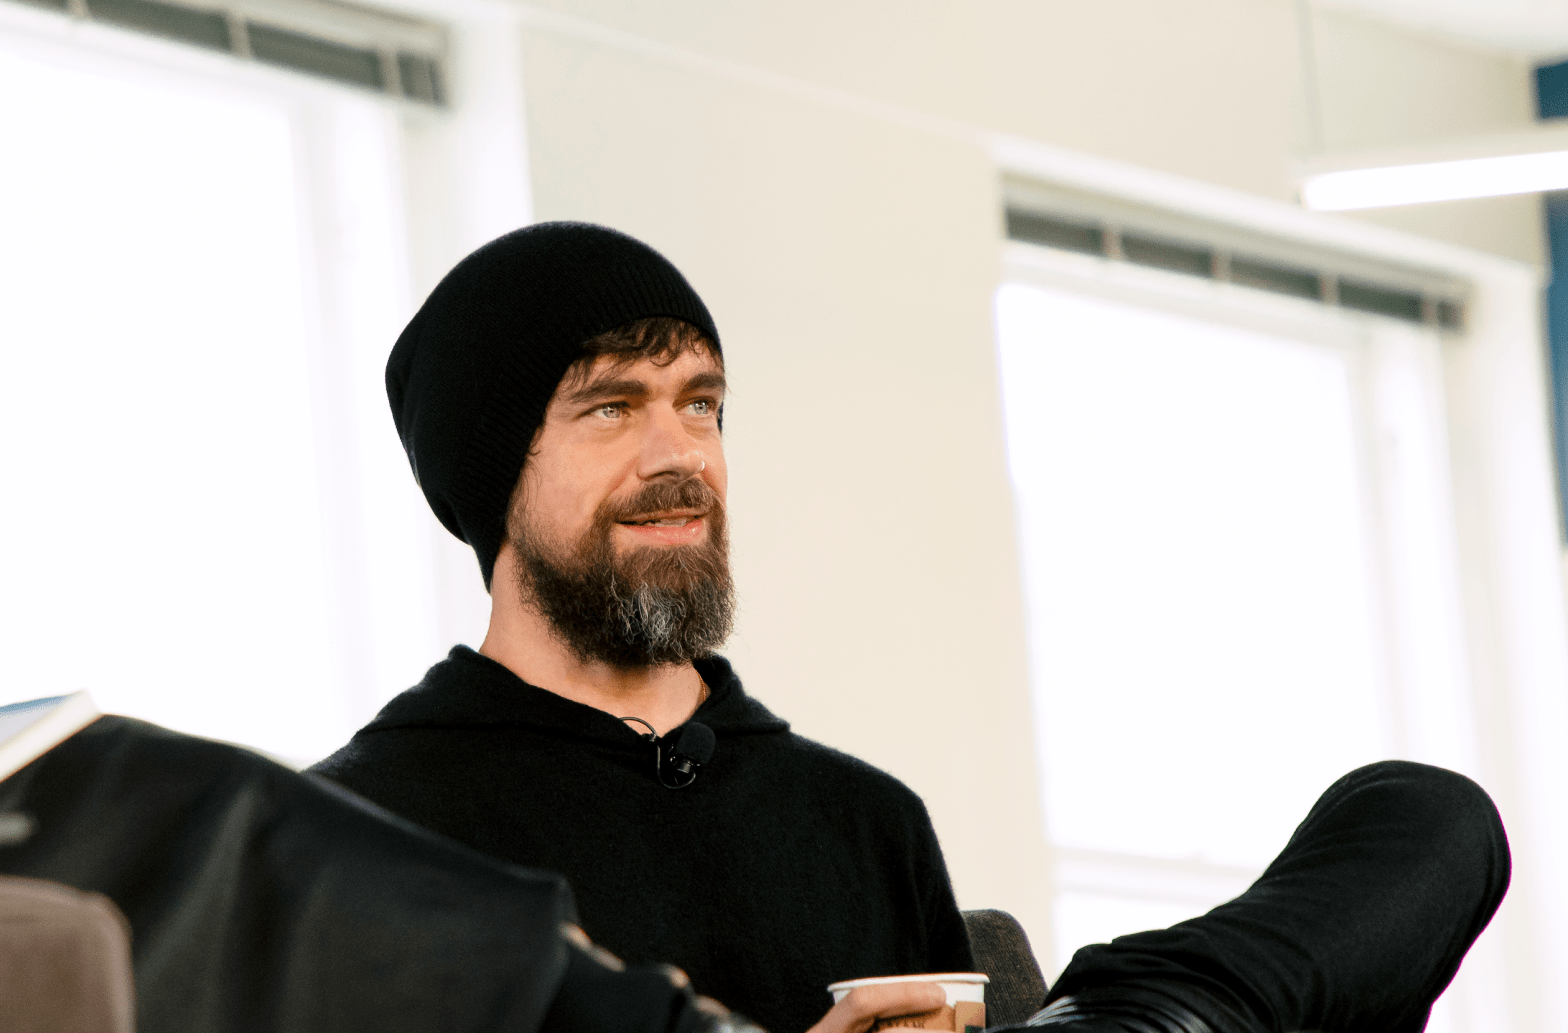 Episode 26: Jack Dorsey and Matt Mullenweg on Remote Collaboration, Finding Serendipity, and the Art of Deliberate Work